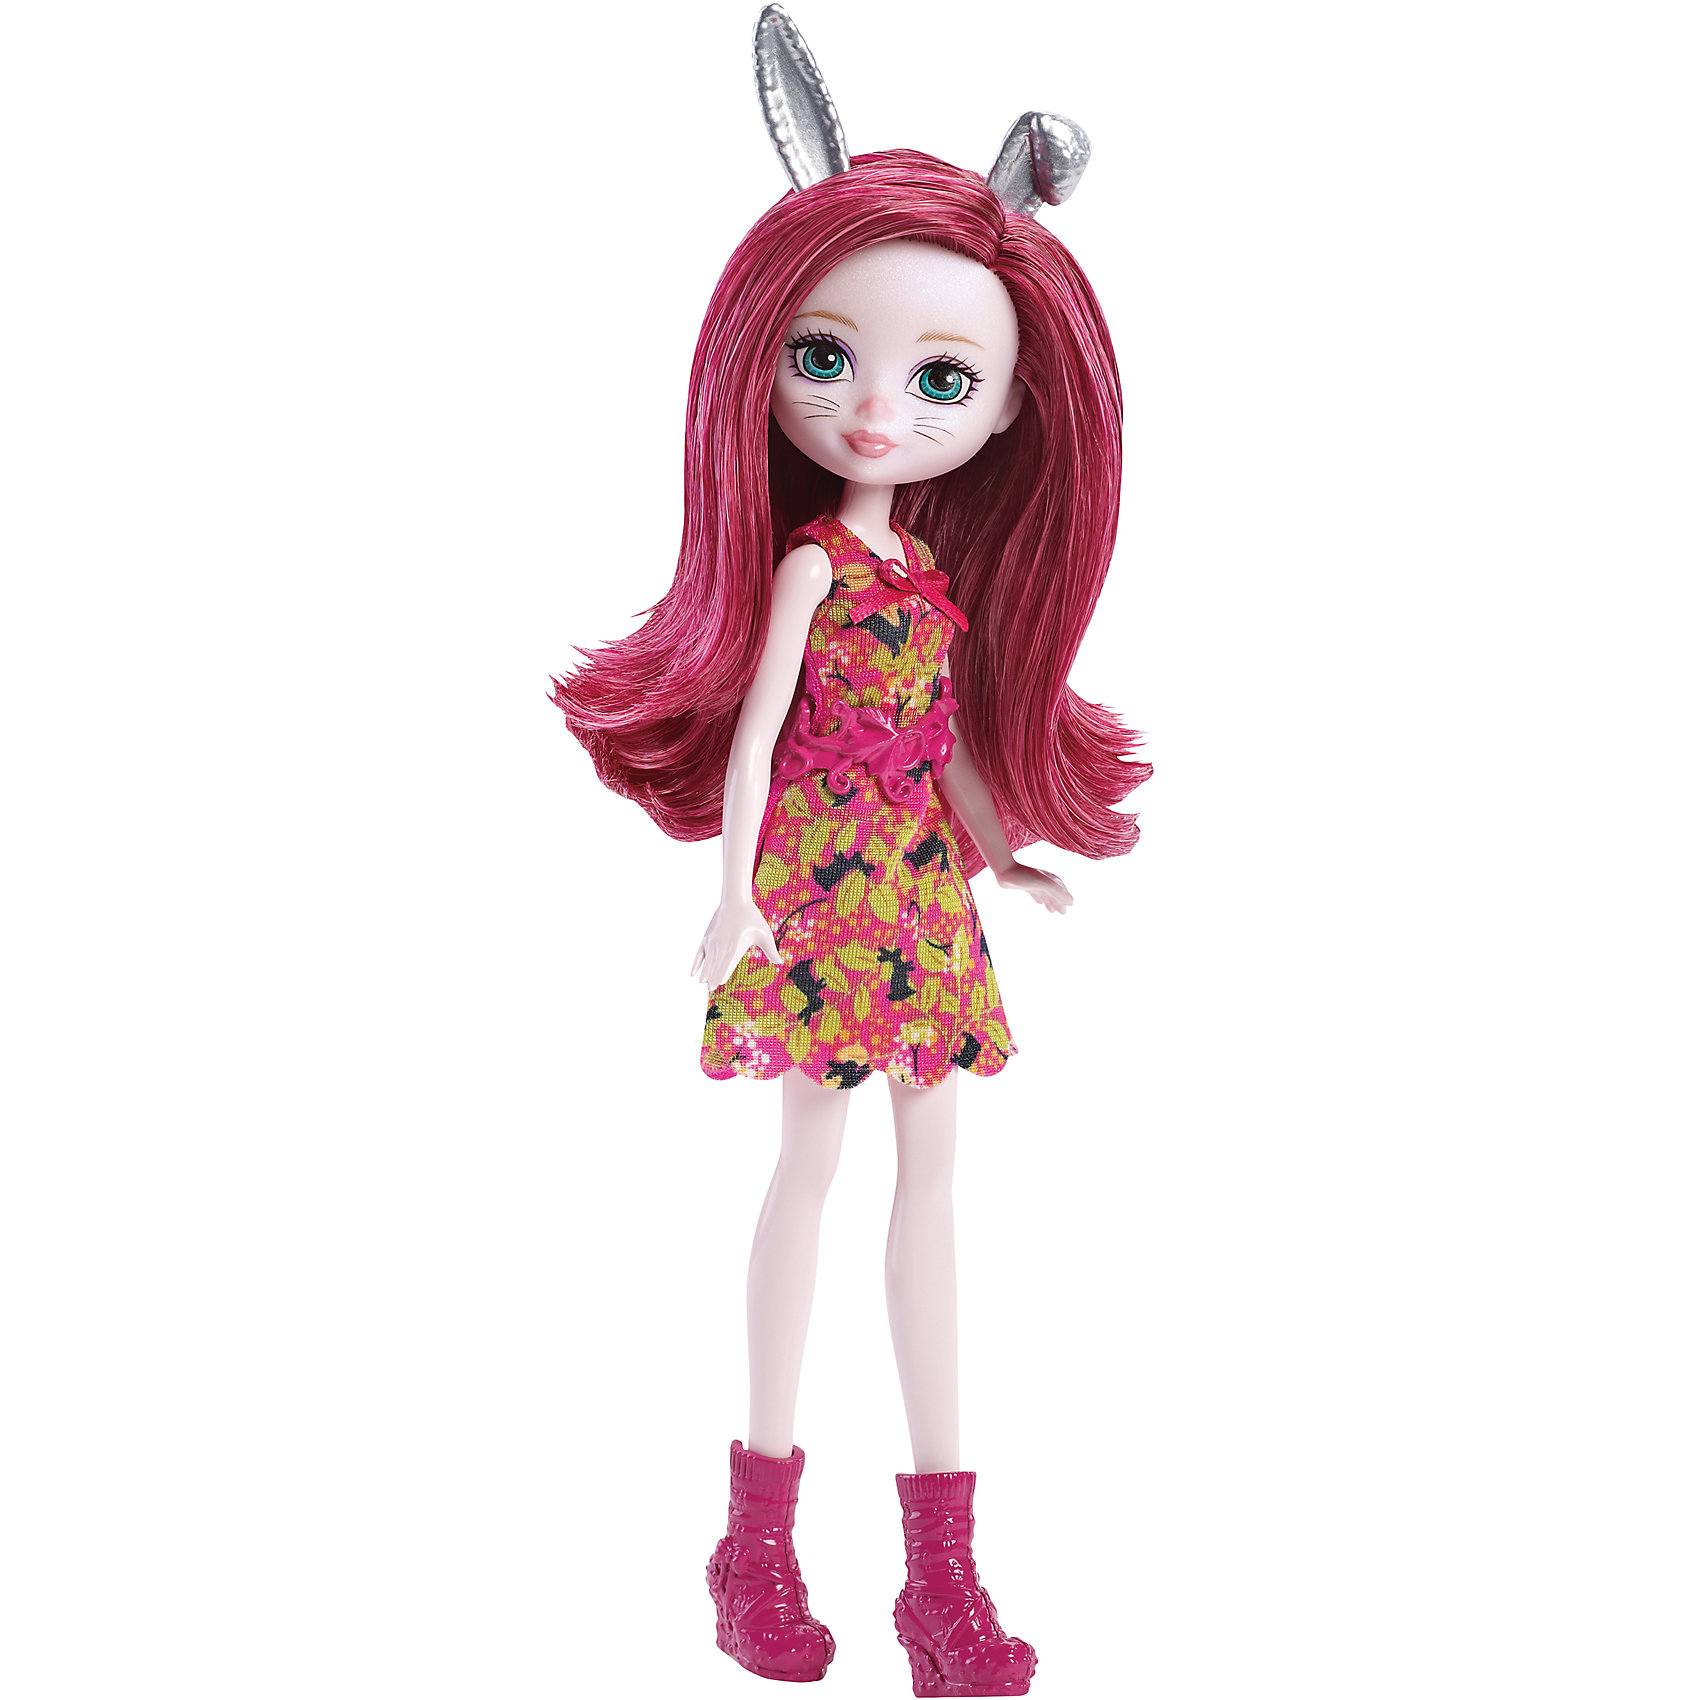 Mattel Кукла-пикси Зайка Игра драконов, Ever After High mattel ever after high dvh81 куклы лучницы банни бланк